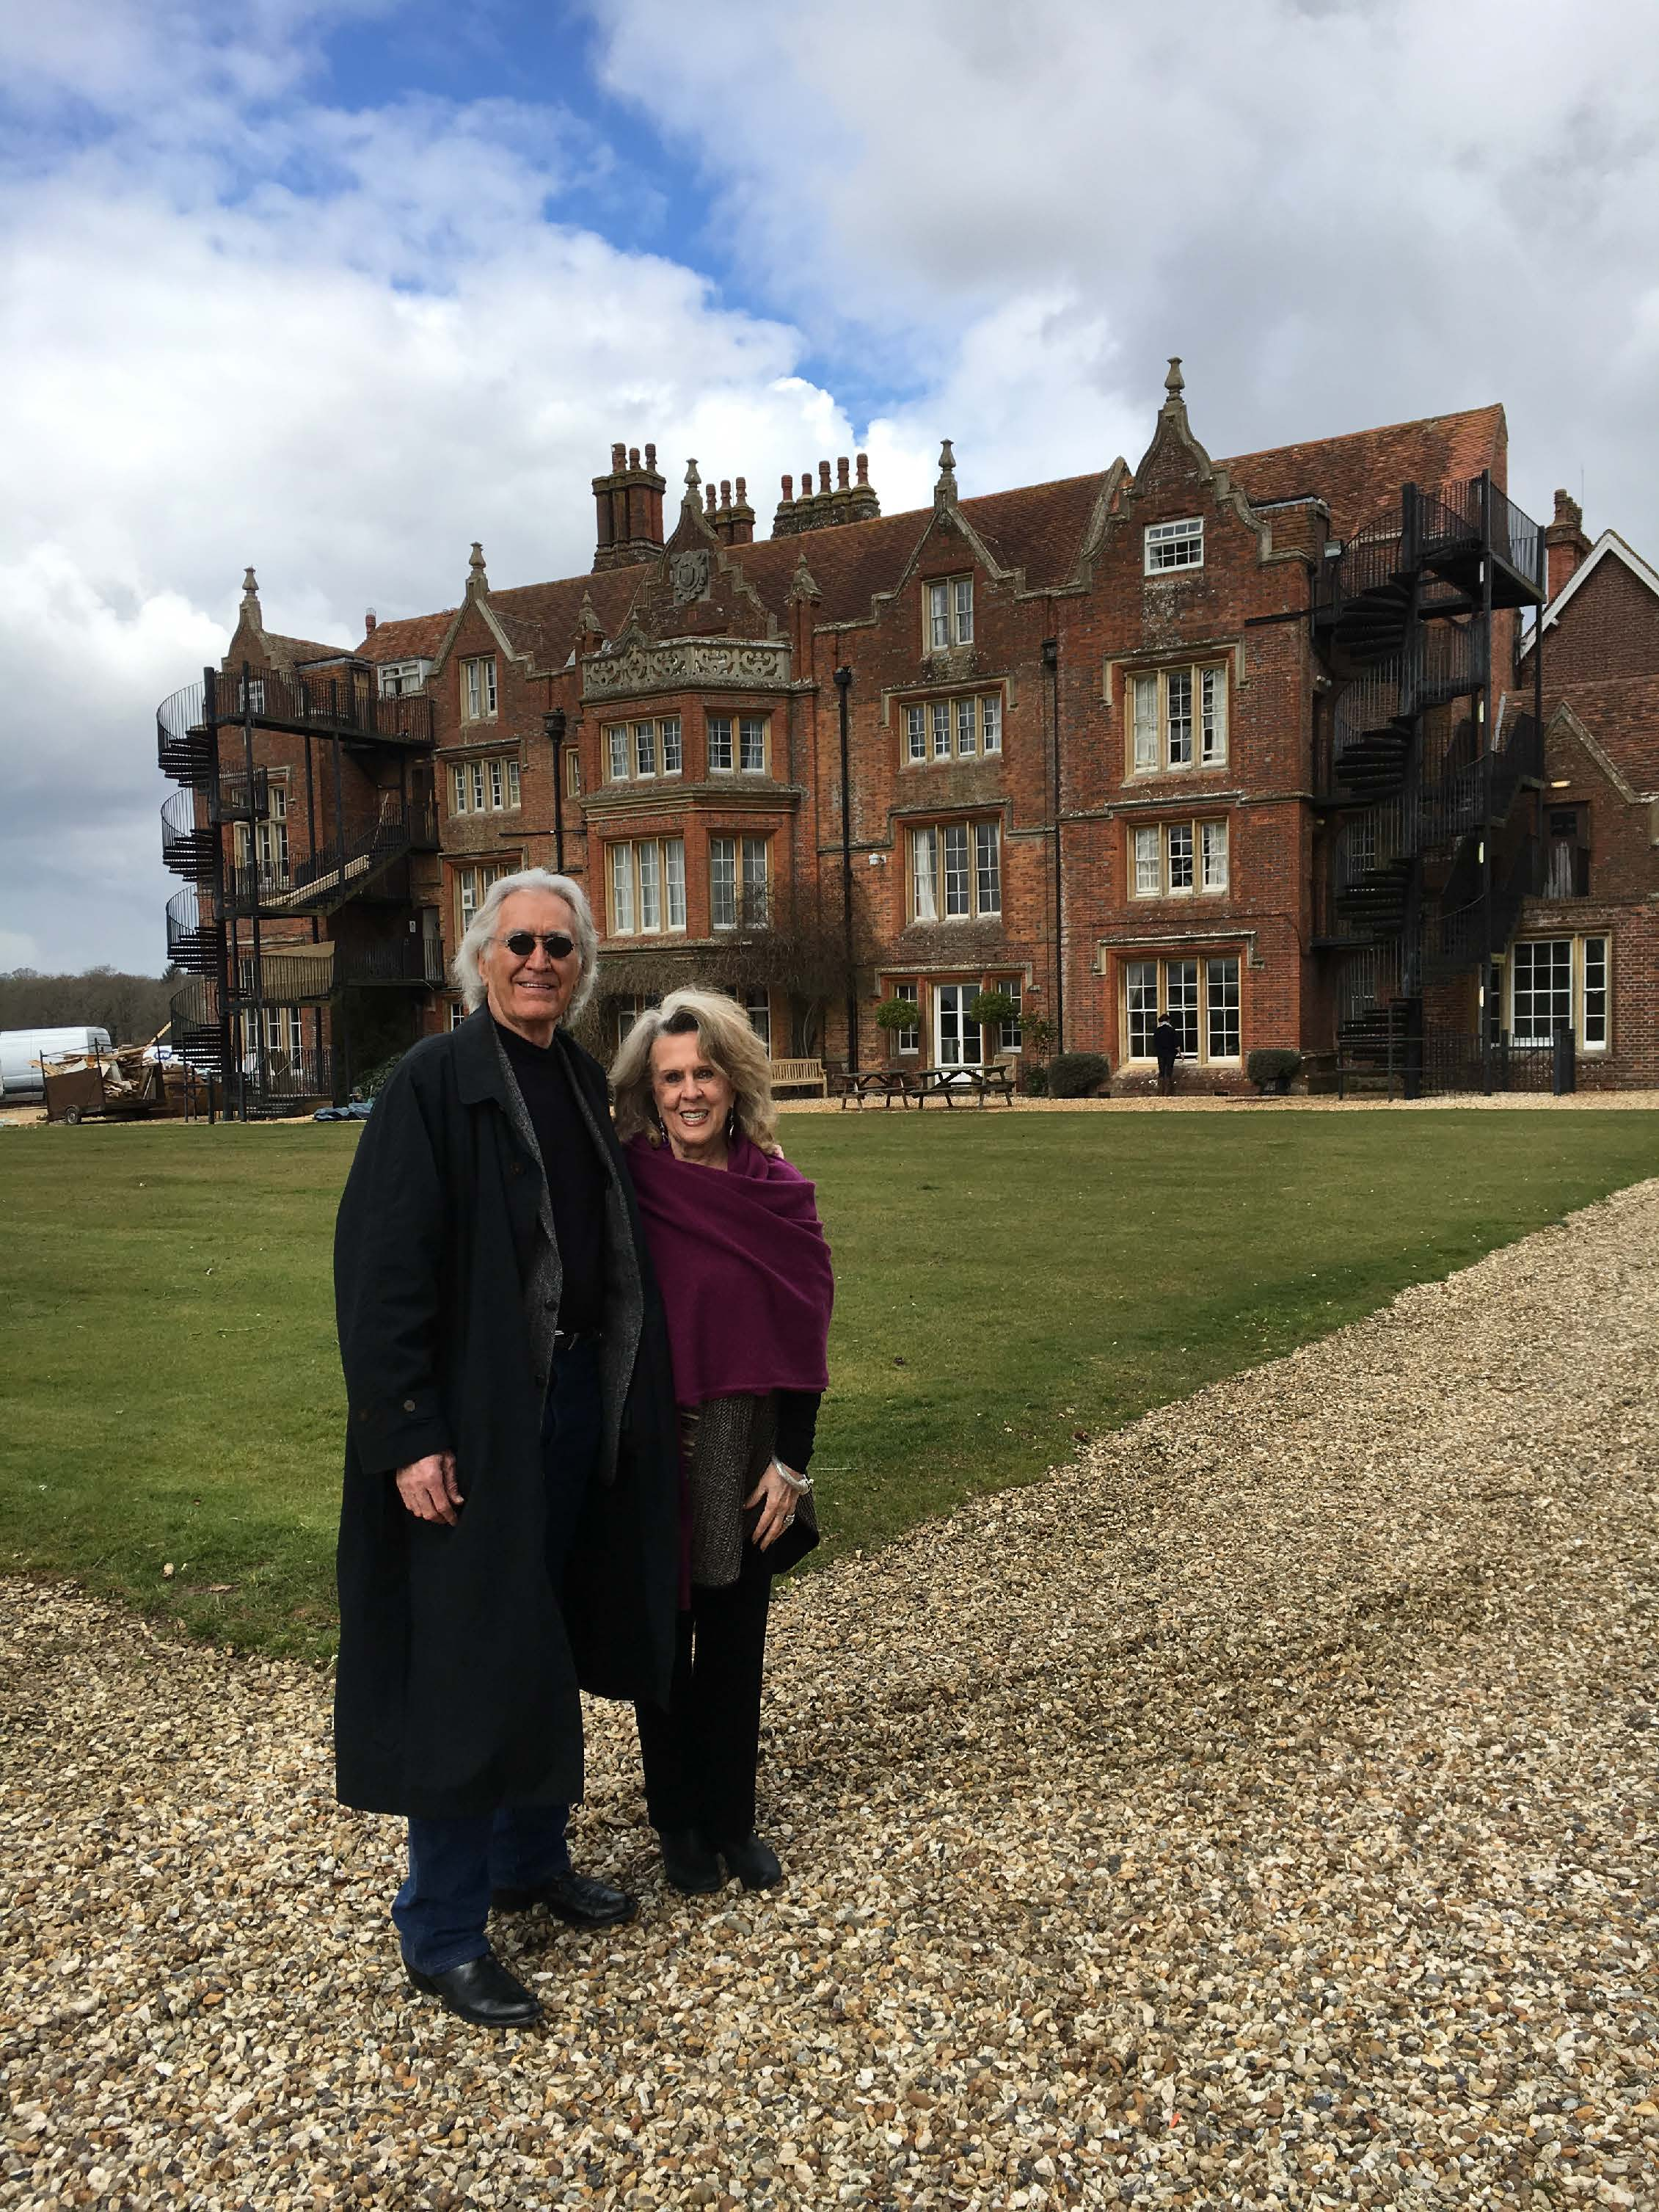 florence nightingale modern day lessons and legacies amstat news larry and barbara dossey at embley park the family home of florence nightingale near